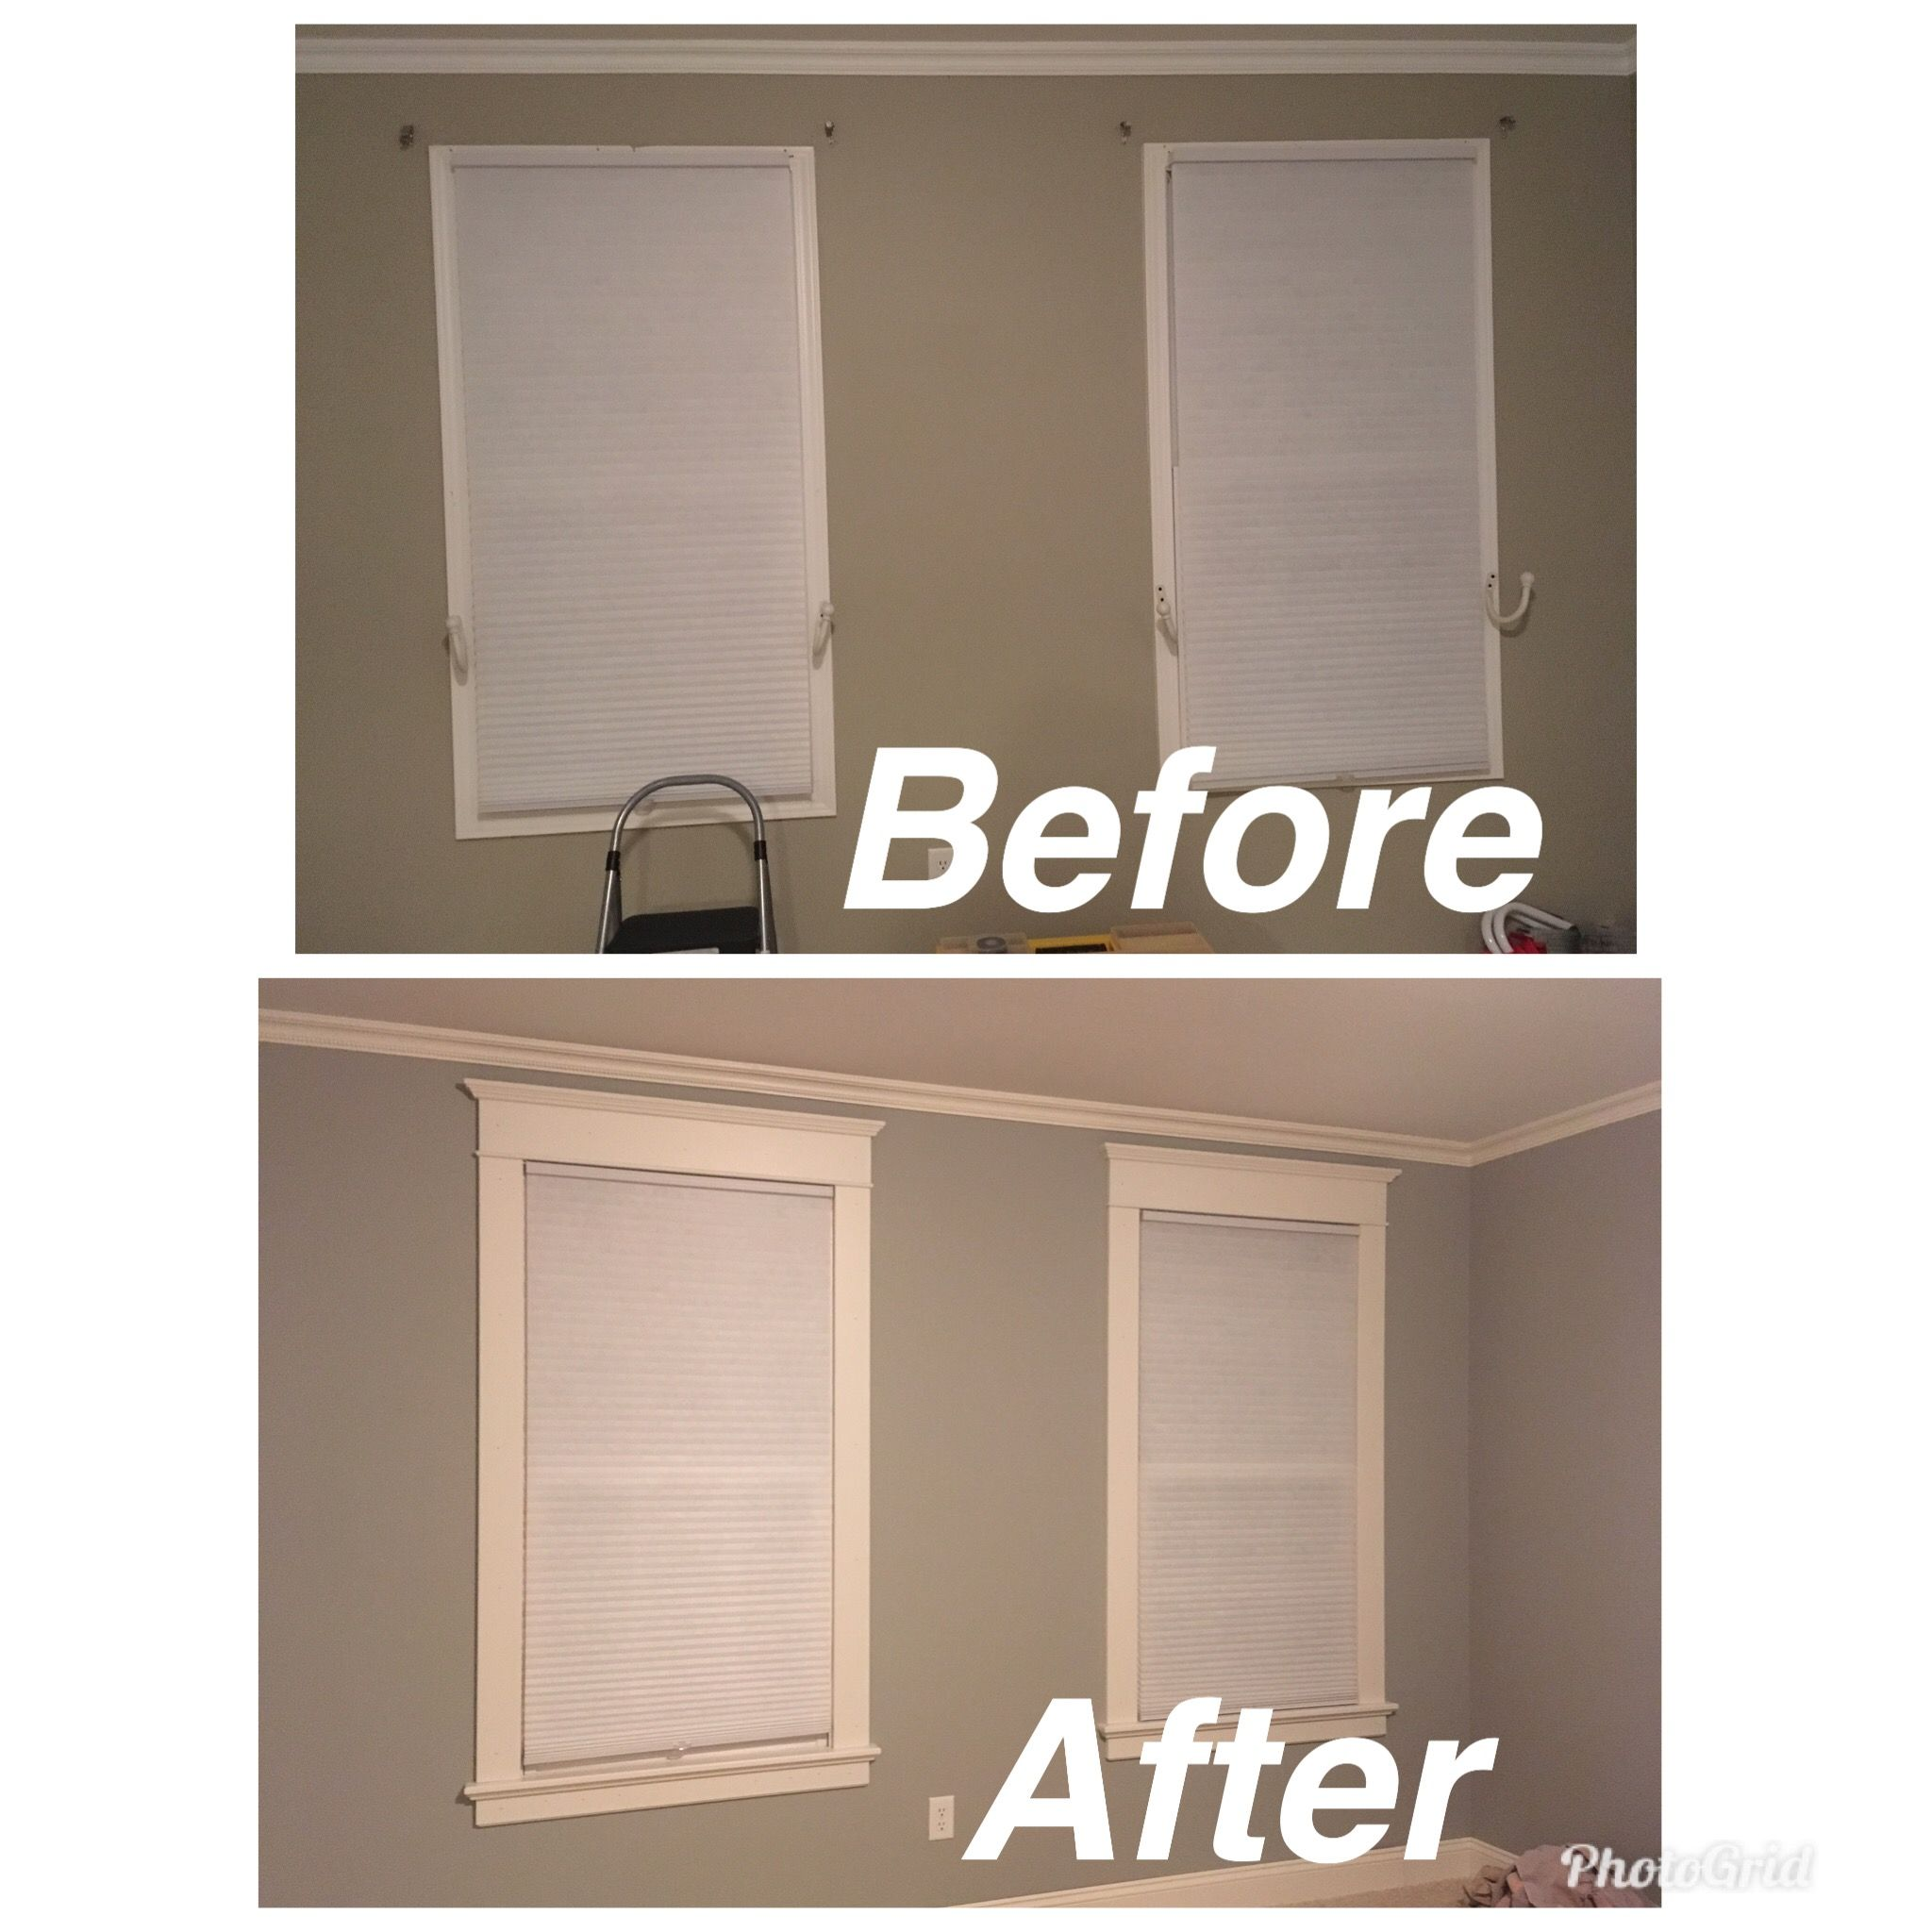 Window Molding Before And After Window Trim Remodel Manufactured Home Remodel Home Remodeling Moldings And Trim